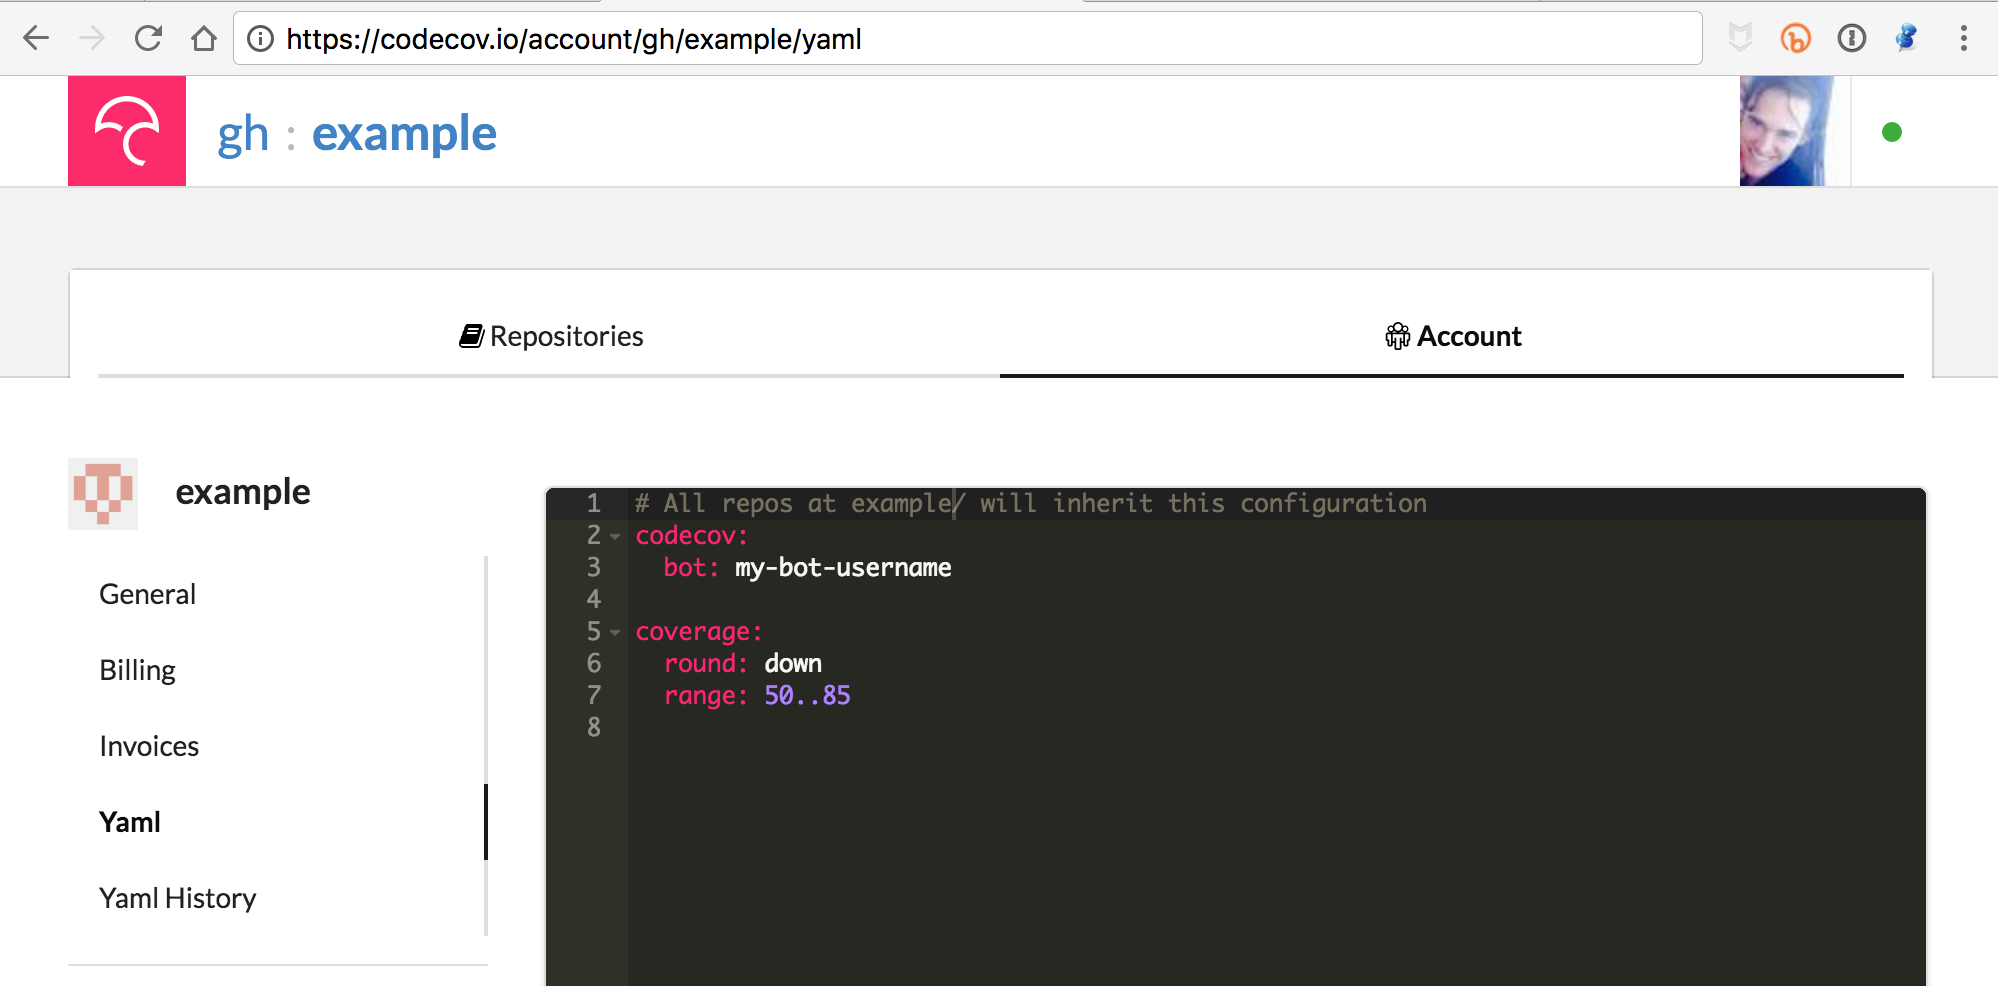 The team yaml (seen in the black box above) can be found in your account center. `/account/gh/OWNER/yaml`